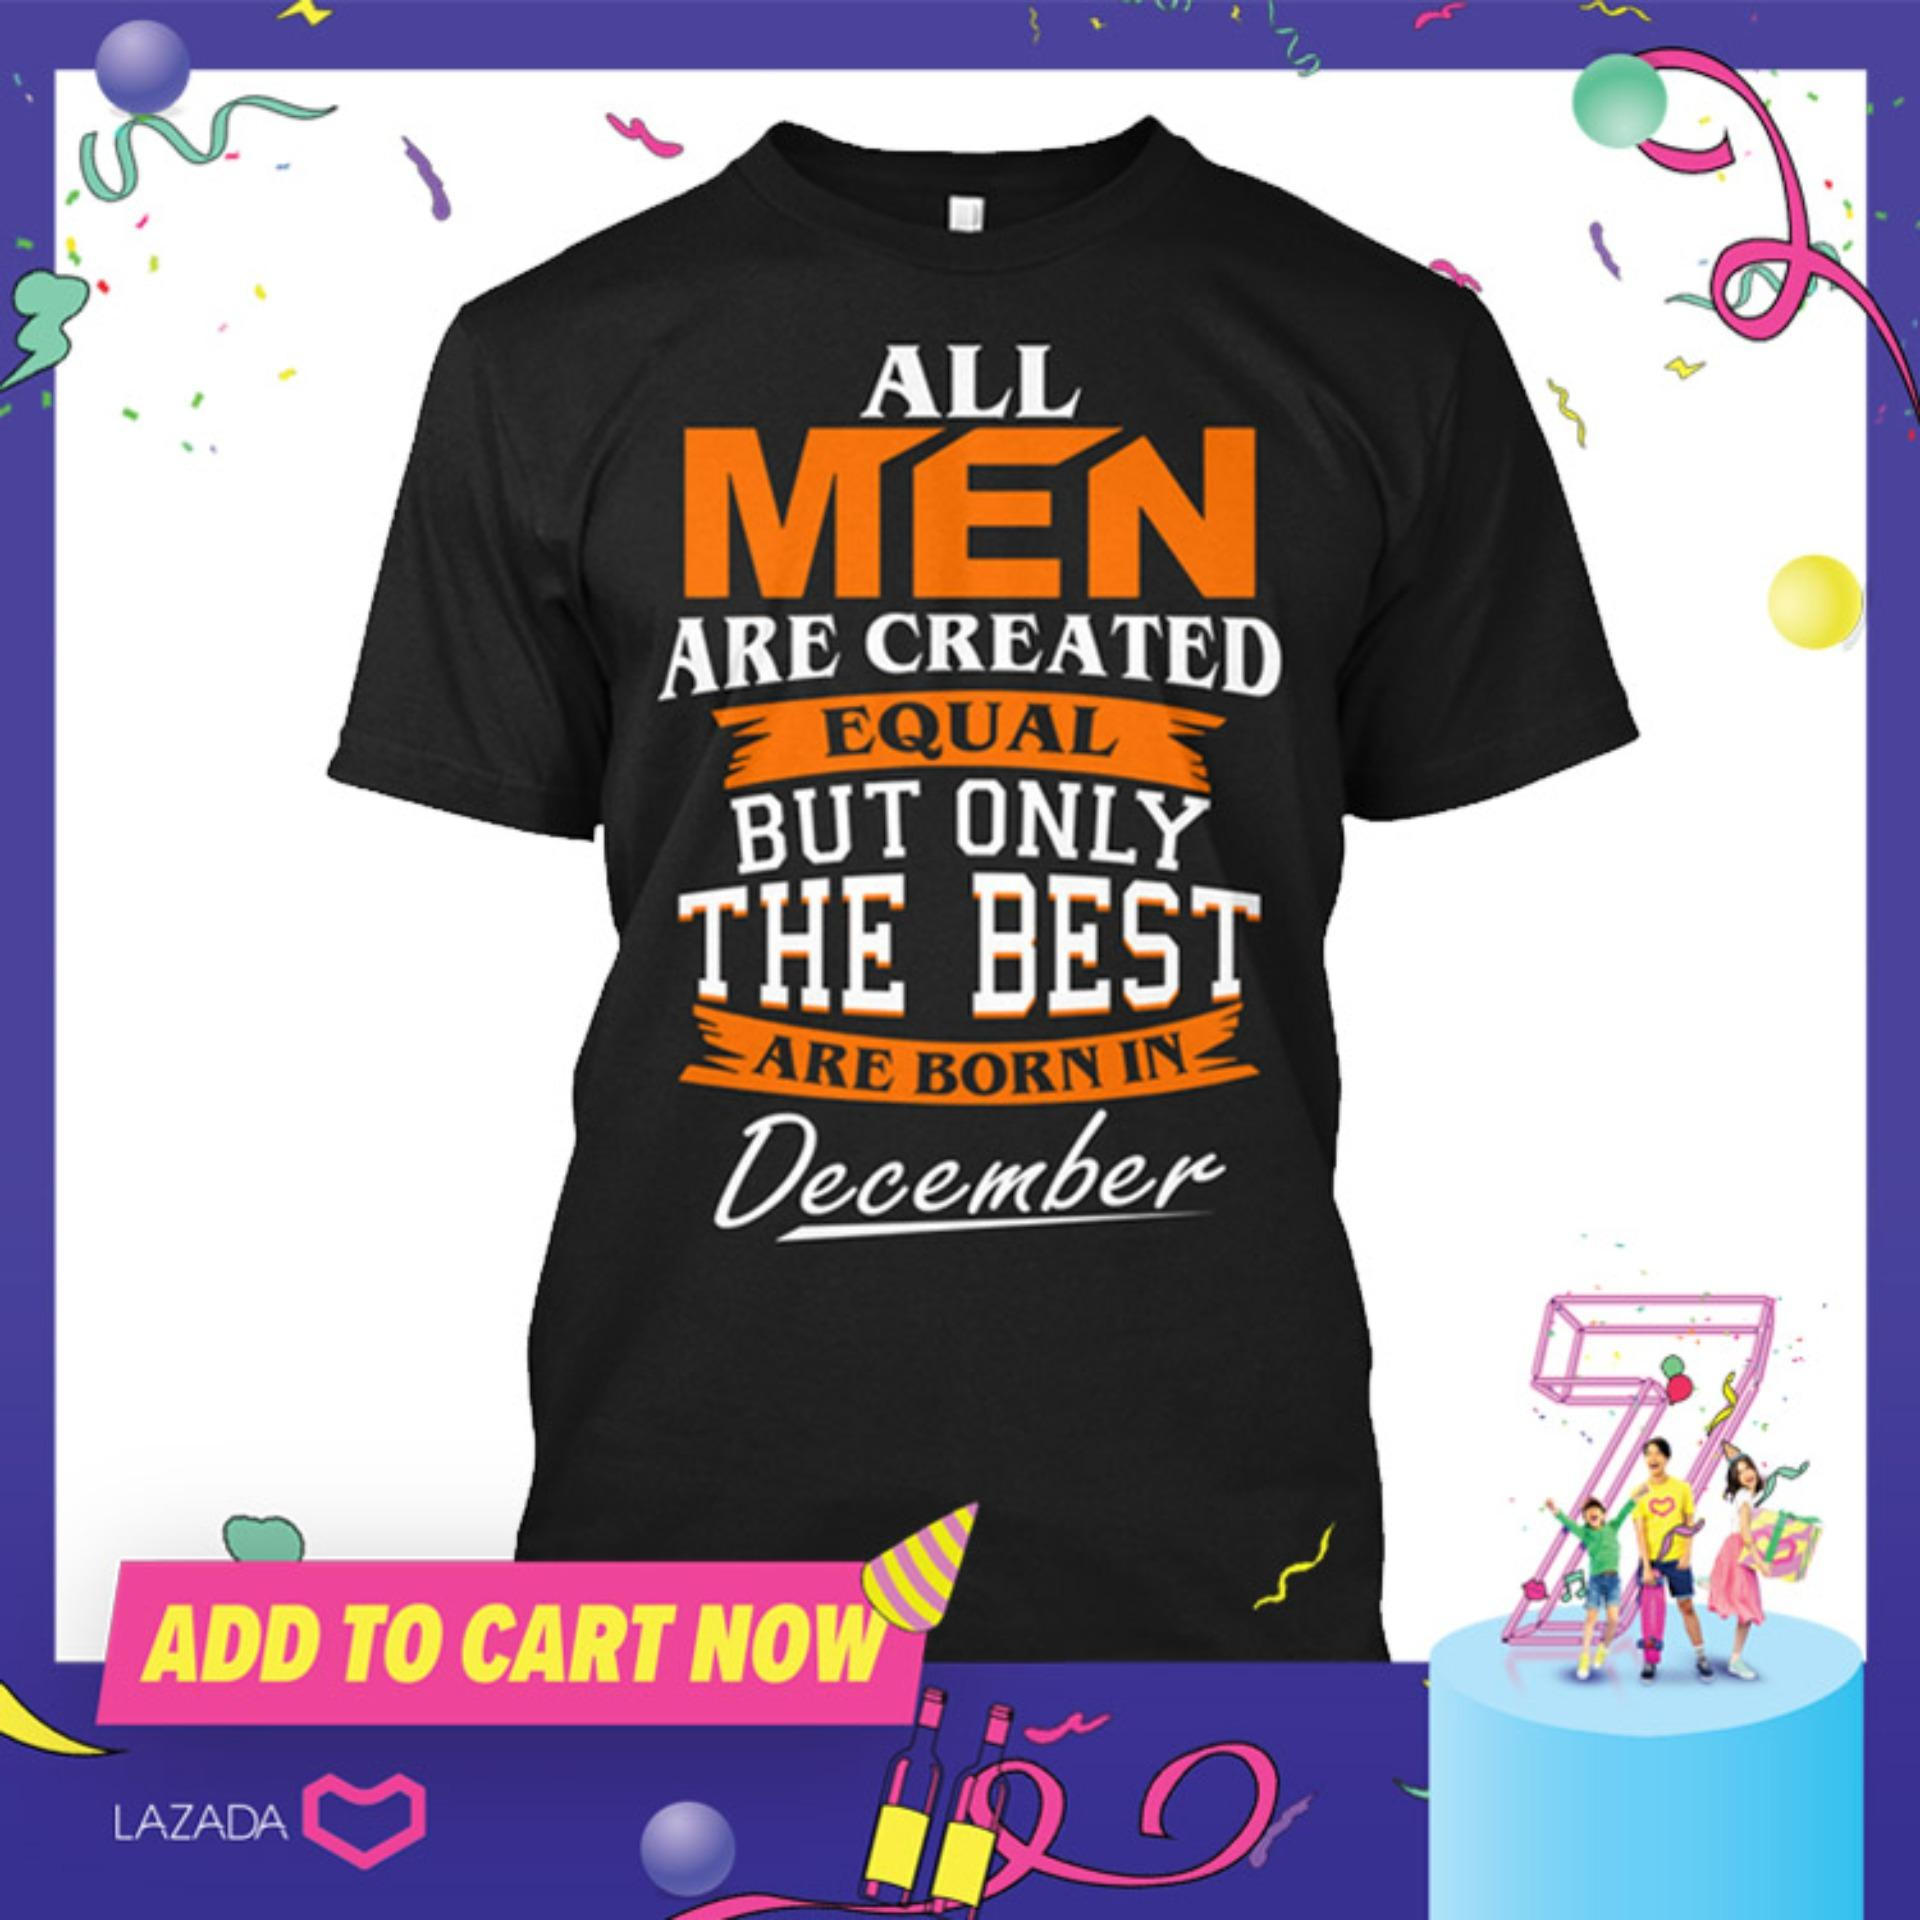 5fab3d9e Product details of All Men Are Created Equal But The Best Are Born in  December Birthday Statement Shirt - tshirt printed graphic tee Mens t shirt  shirts for ...